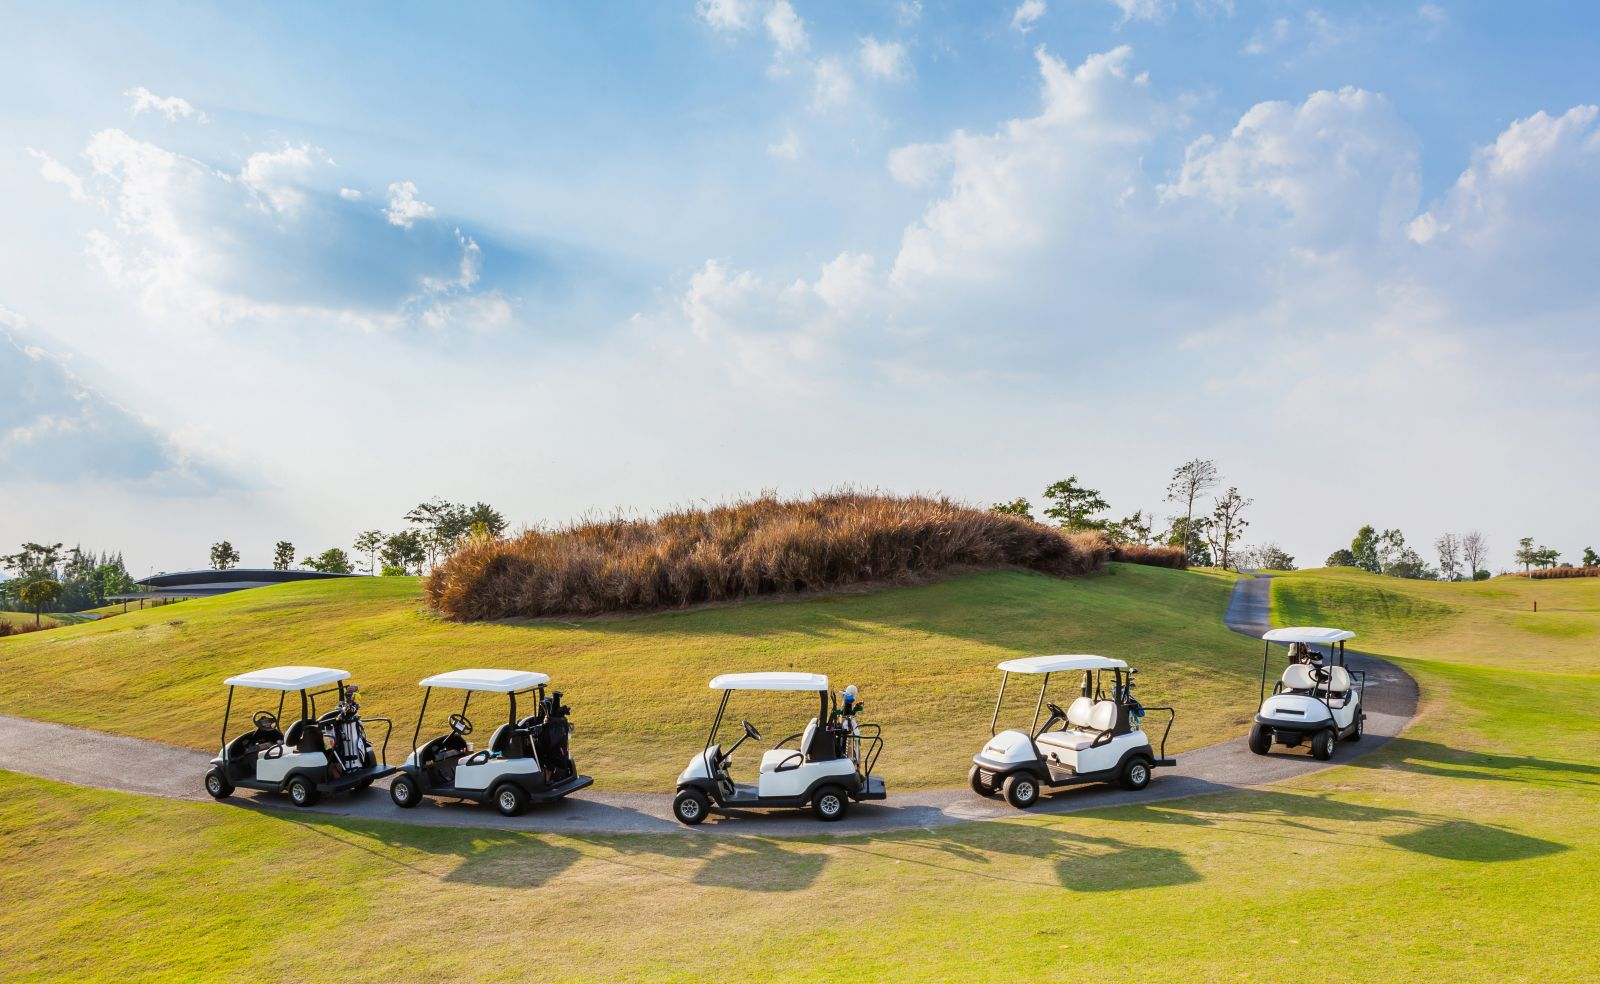 A group of golf carts are readied for riding on a cart path